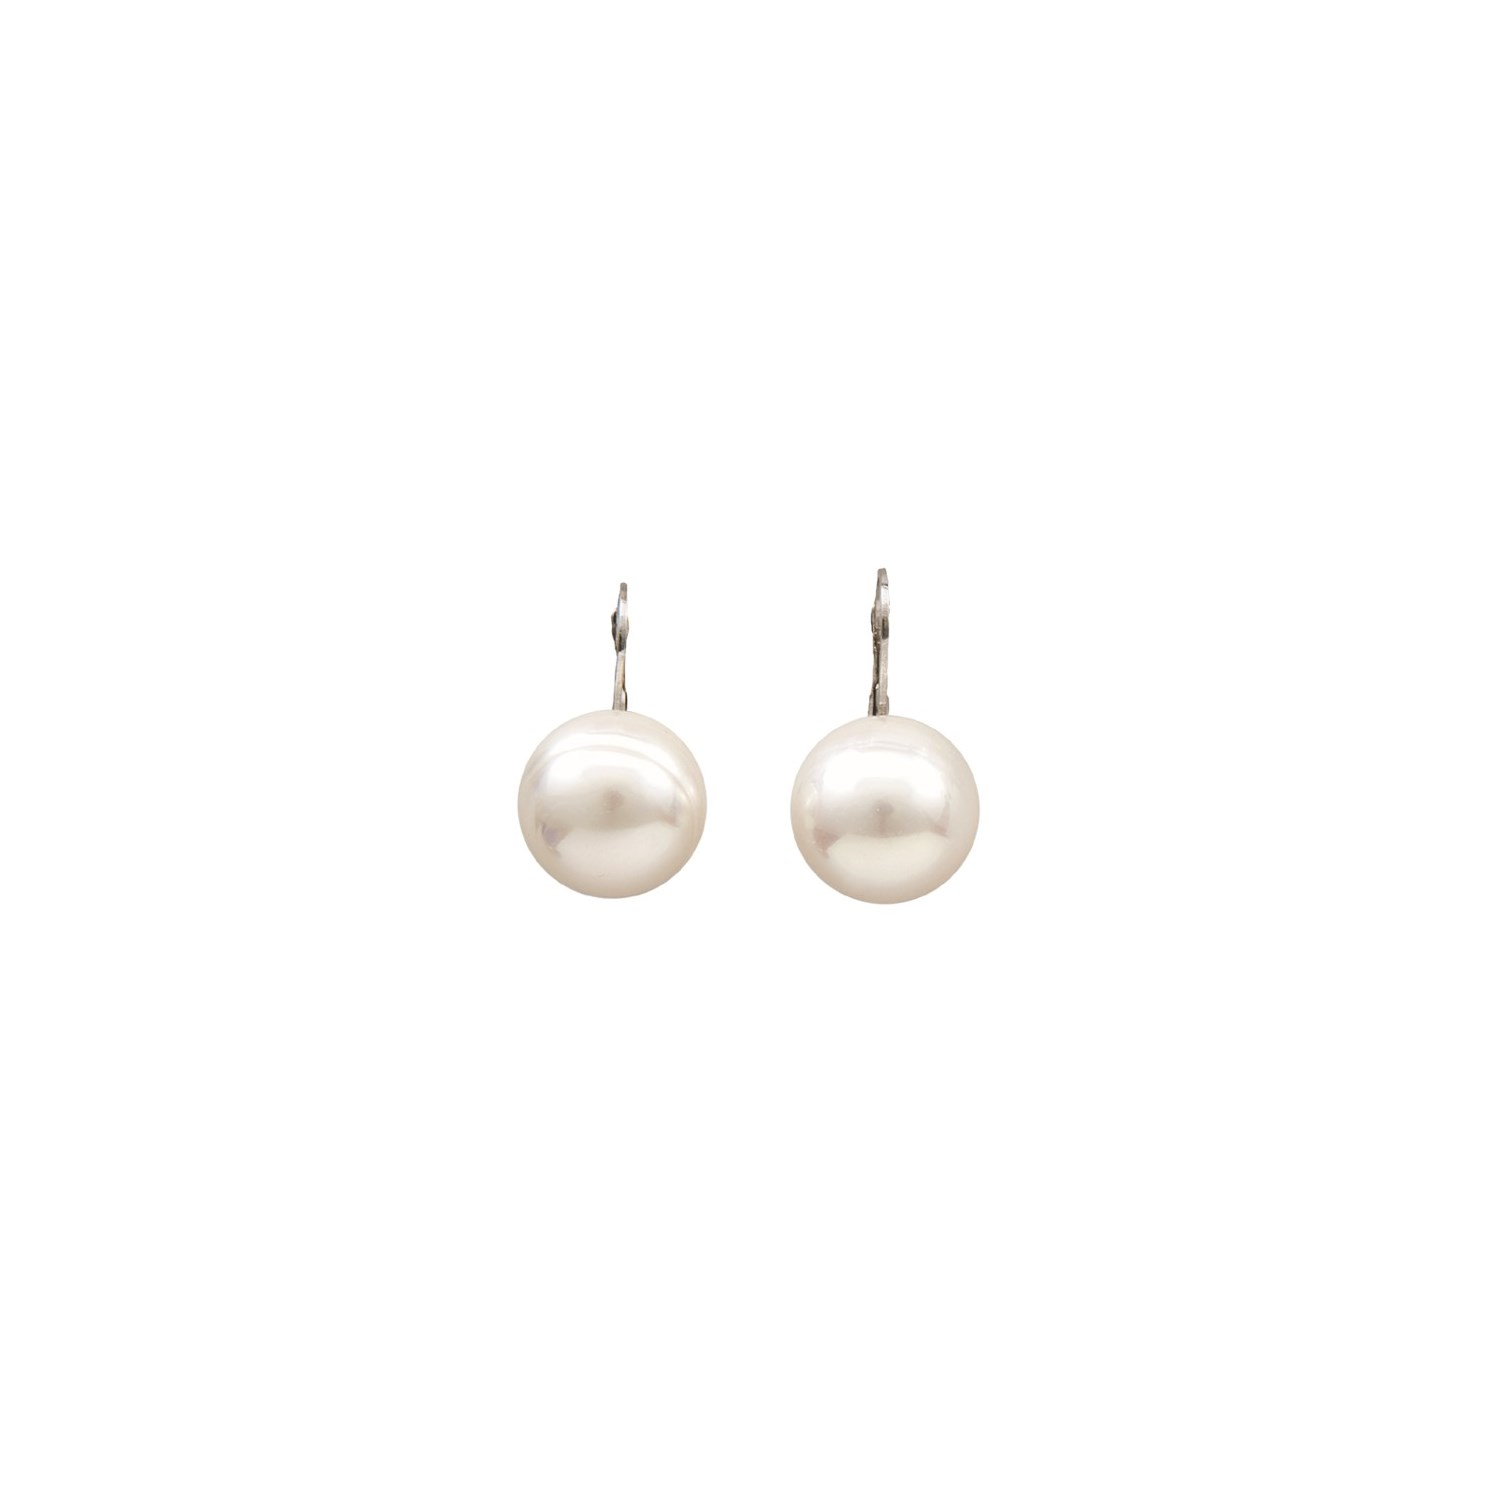 pearls harvest style product category archives earrings timeless pearl giant daily